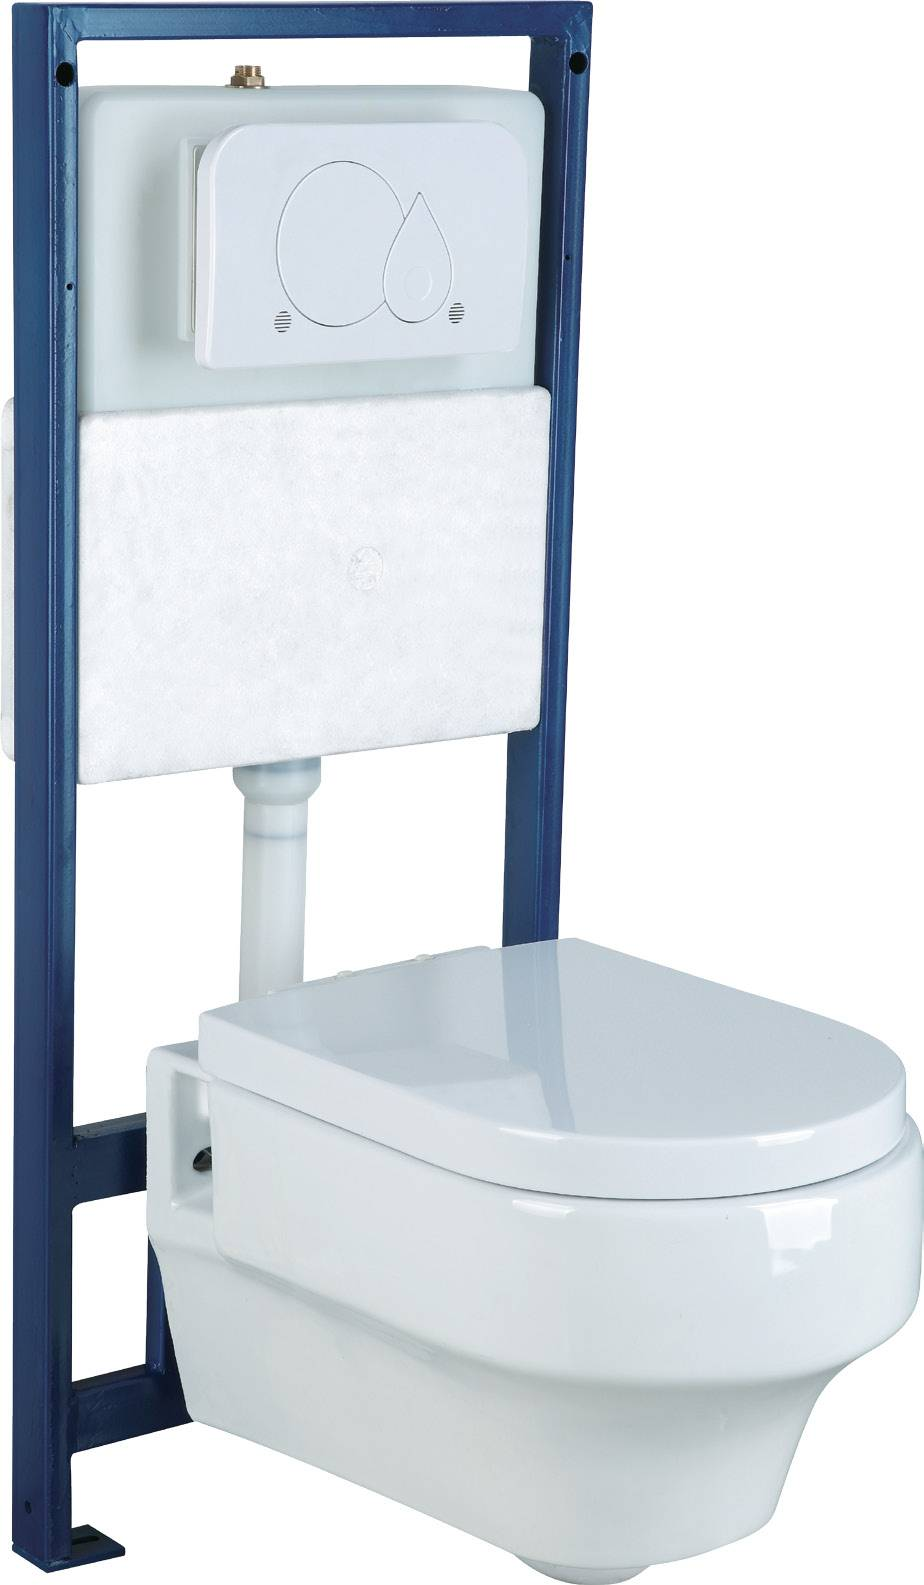 Concealed self-powered auto cistern